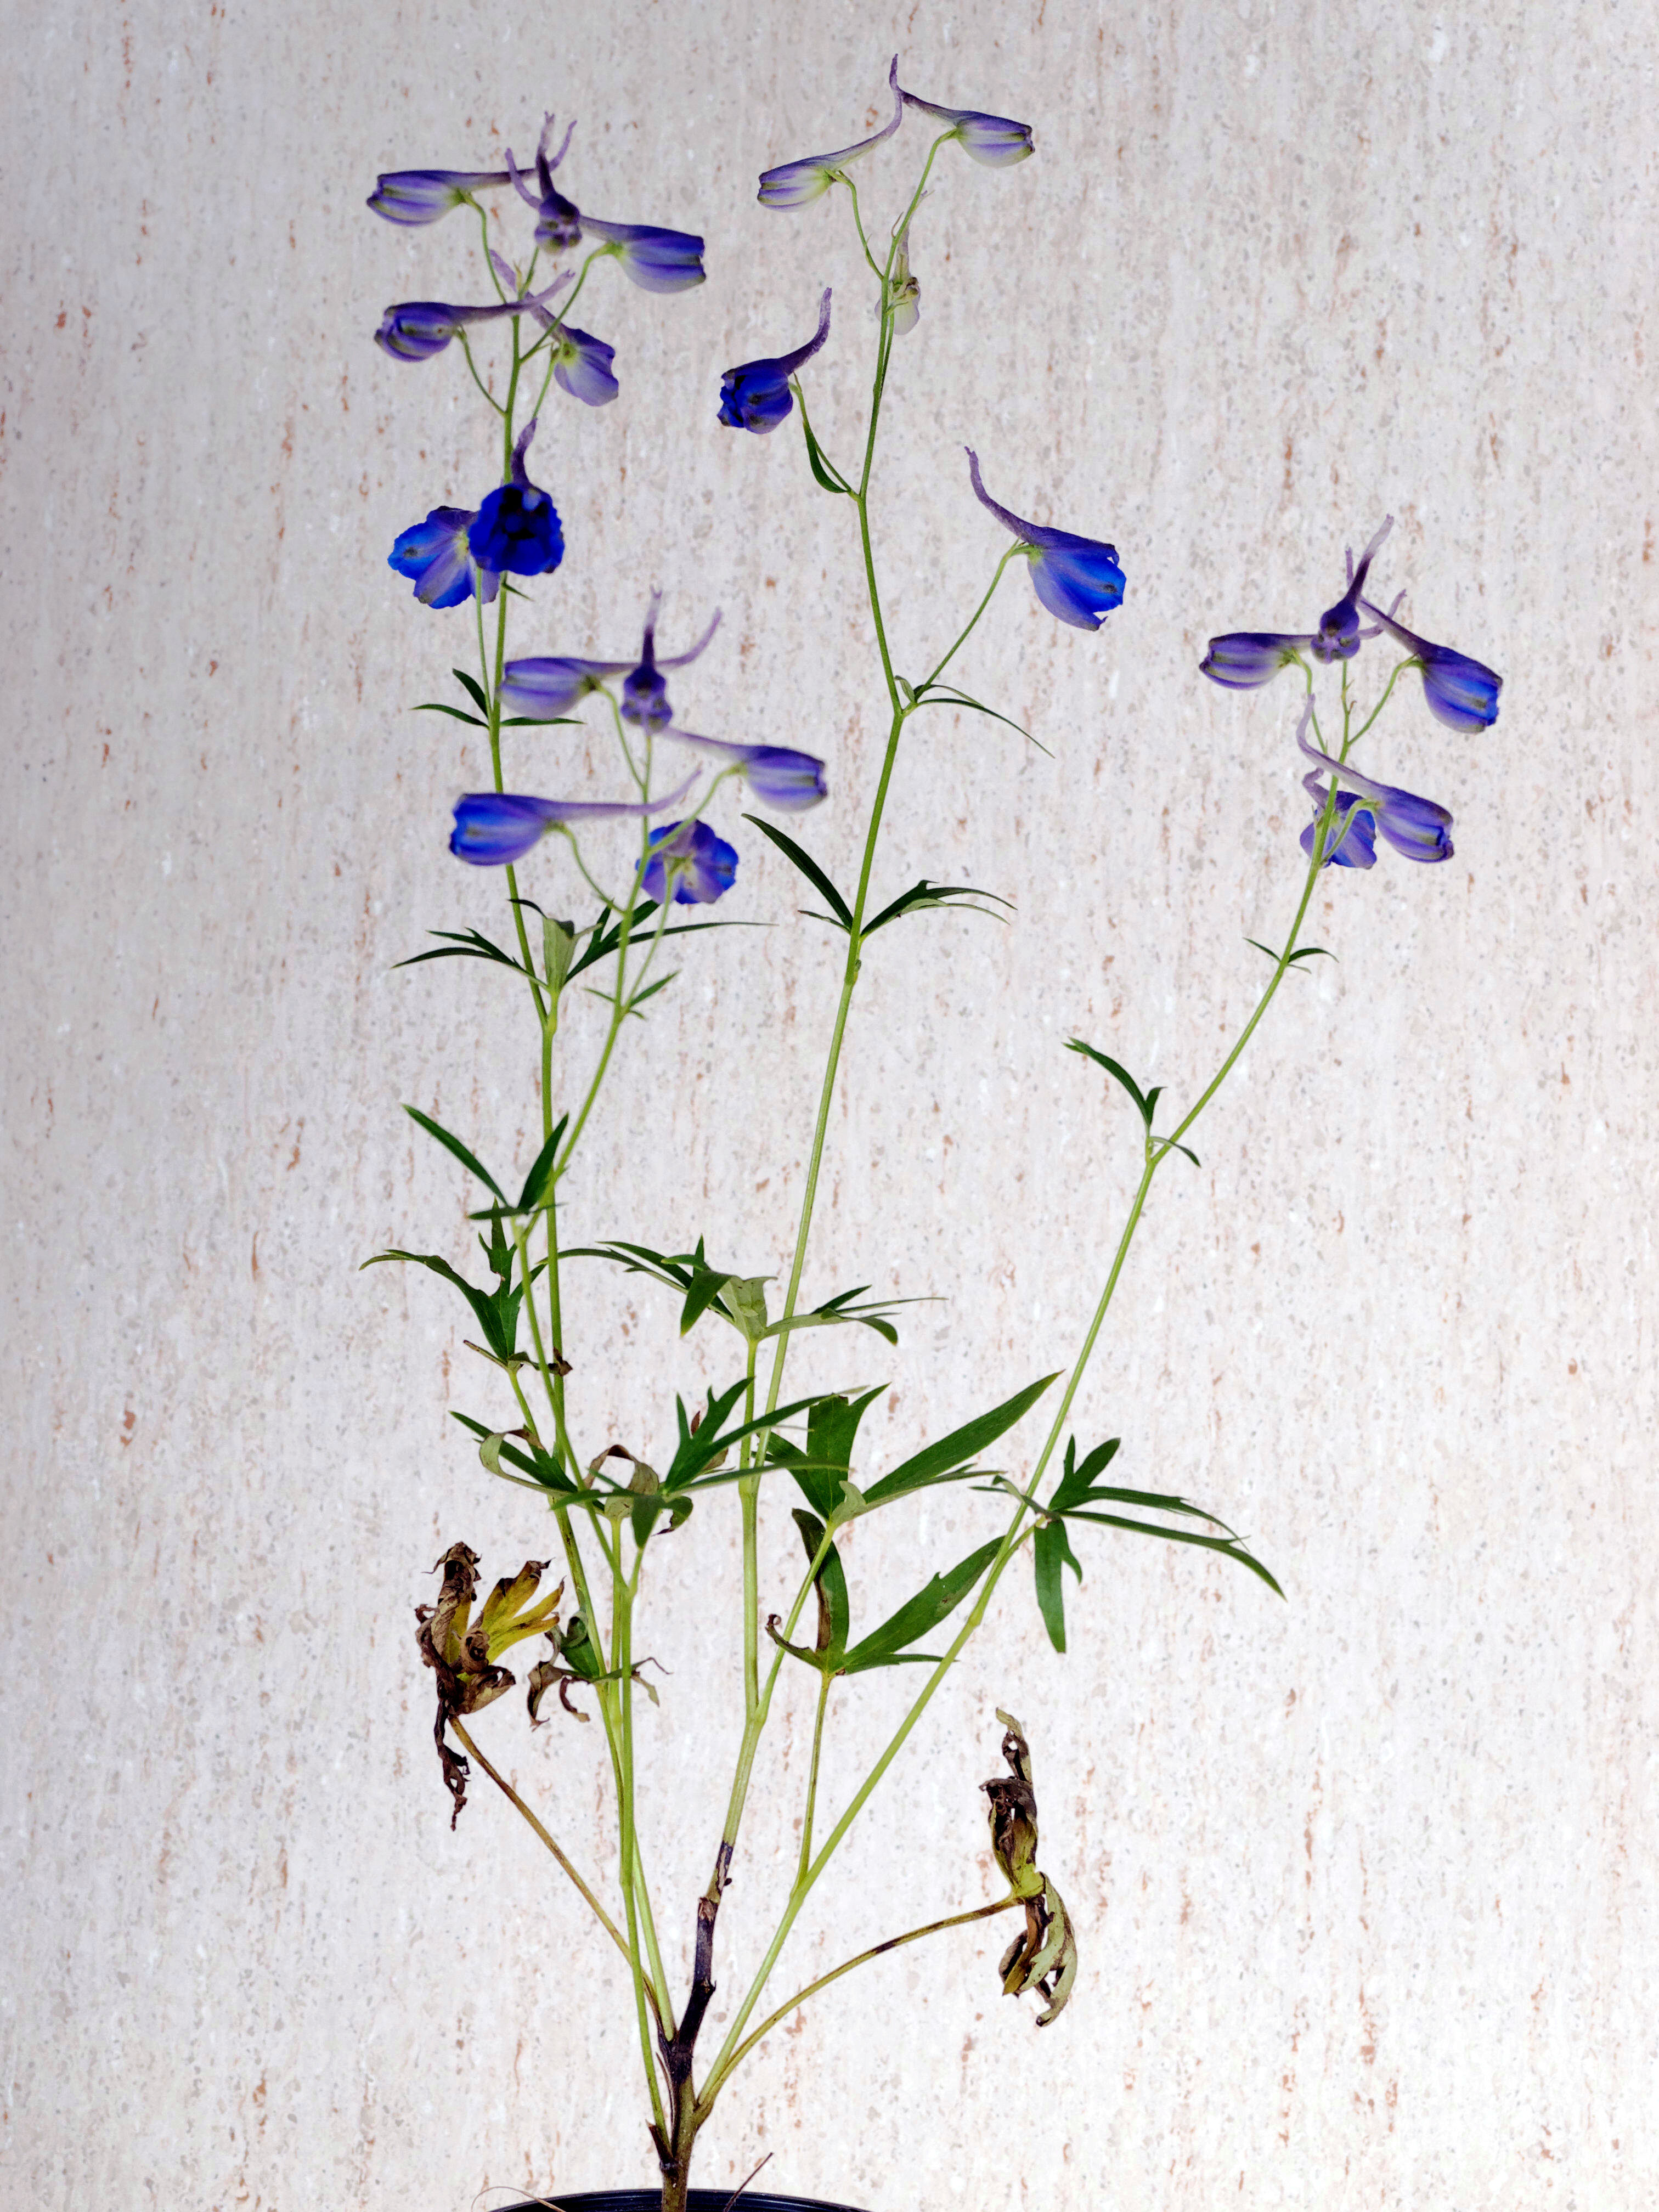 This should be Delphinium-1.jpeg.  Is it missing?